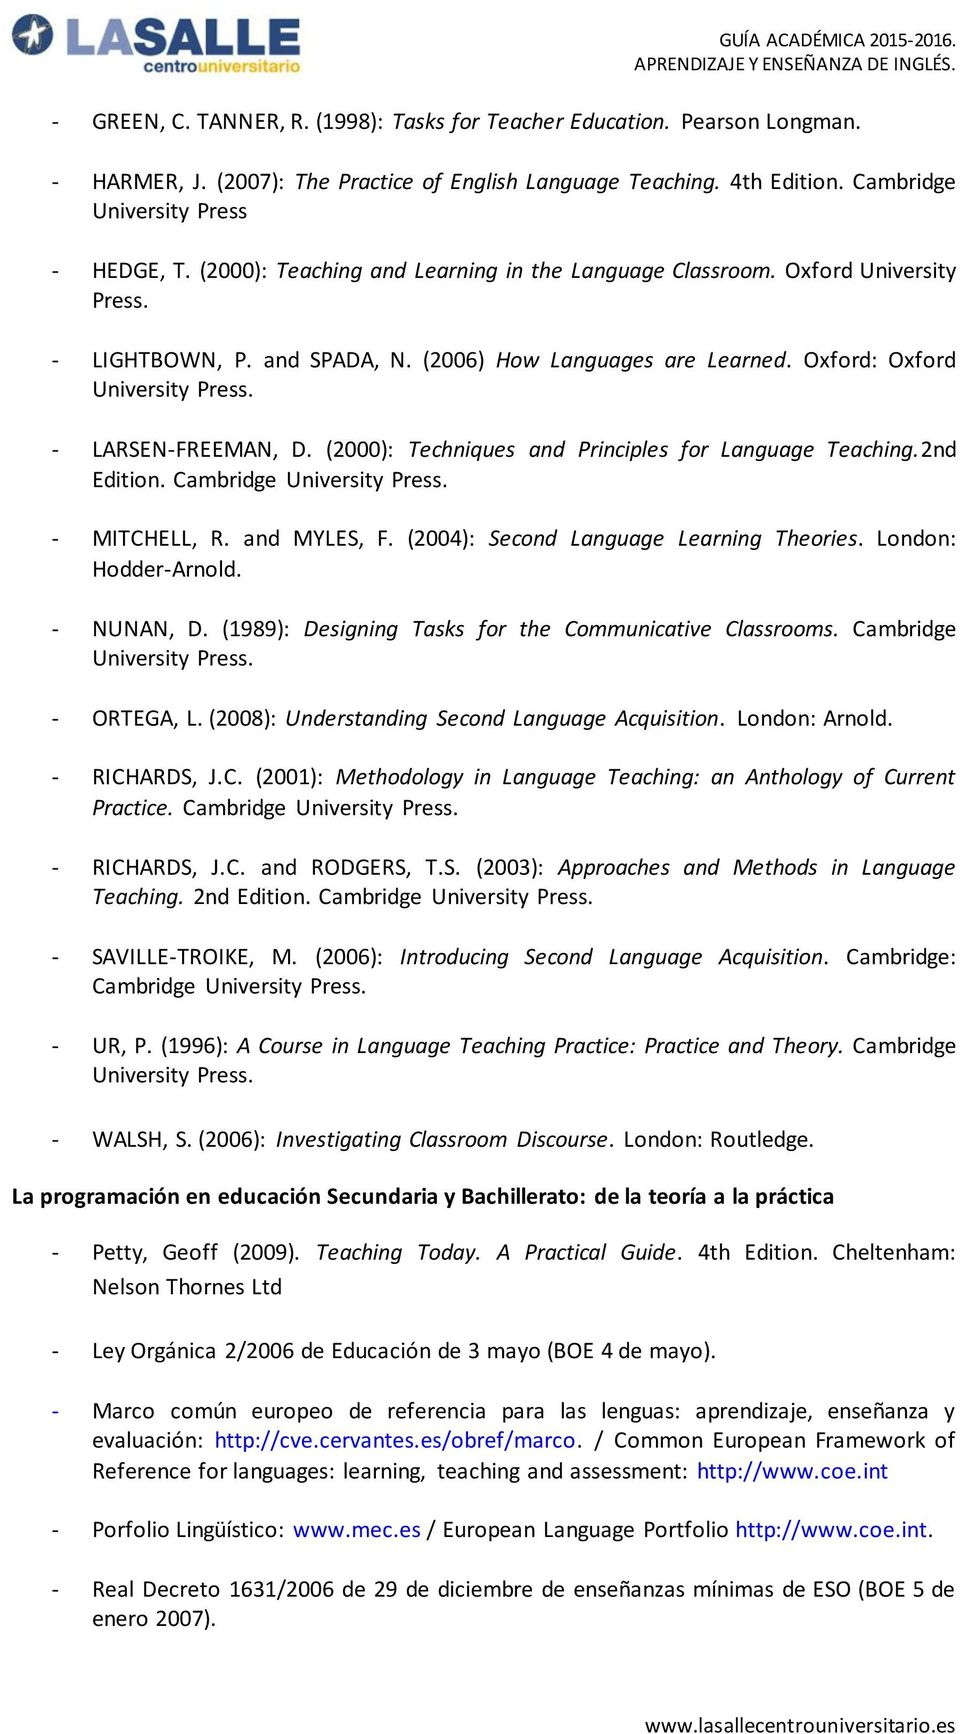 (2000): Techniques and Principles for Language Teaching.2nd Edition. Cambridge MITCHELL, R. and MYLES, F. (2004): Second Language Learning Theories. London: Hodder-Arnold. NUNAN, D.